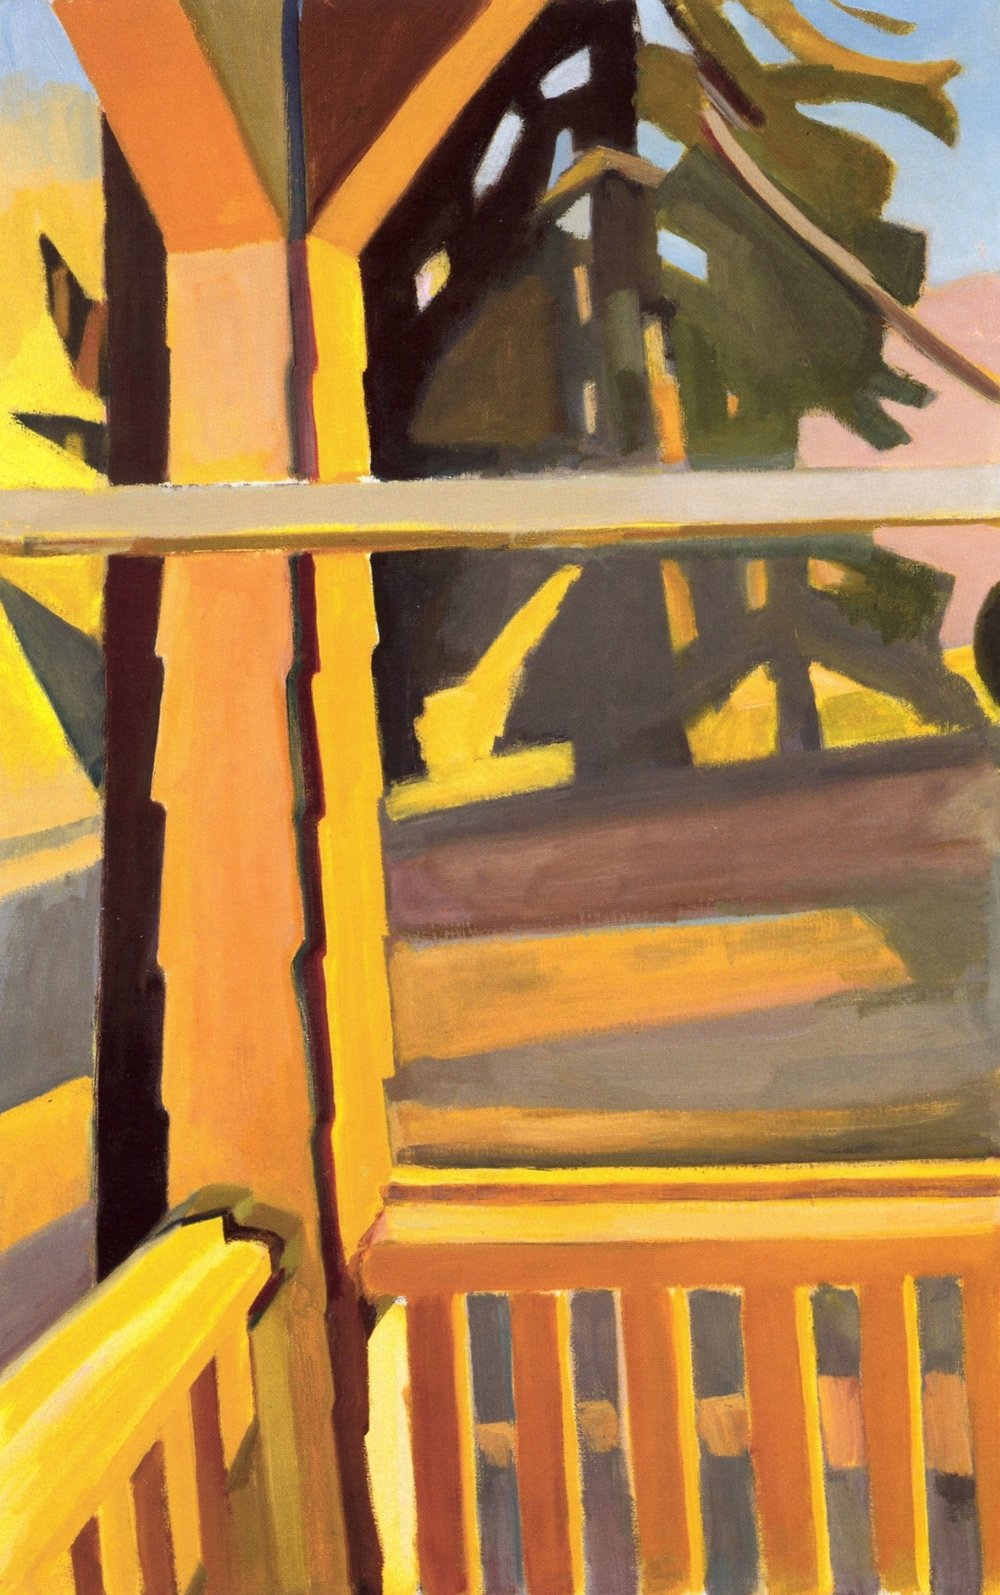 Martha Armstrong   Porch Post - Winter Sun  , Oil on canvas, 25'' x 40'', 2004